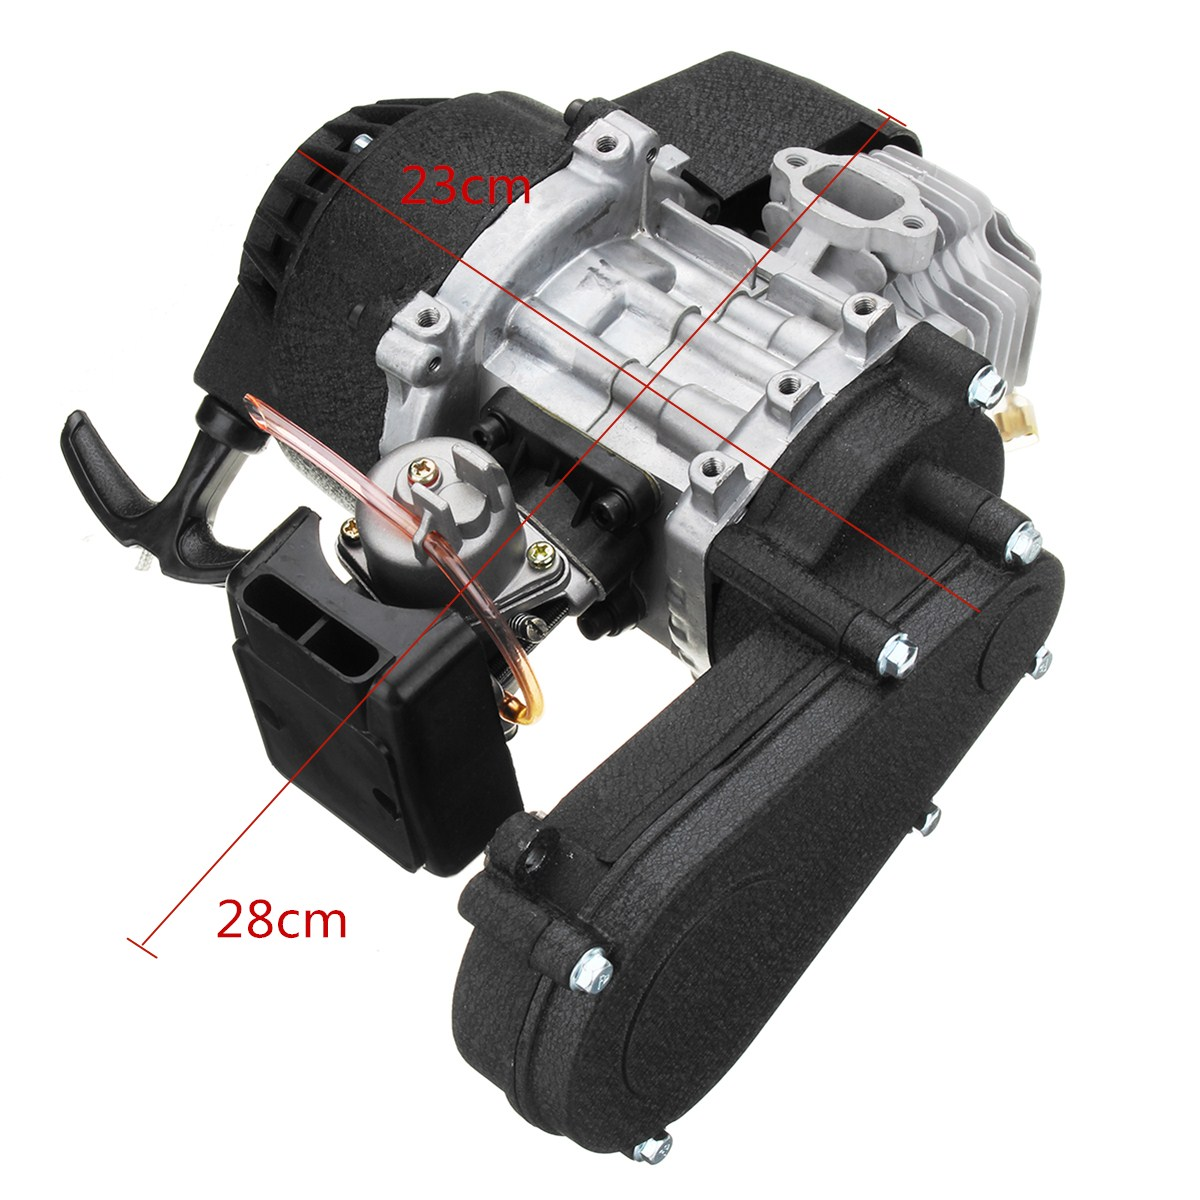 49cc Engine 2-Stroke Pull Start With Transmission For Mini Motor ATV Quad Bike